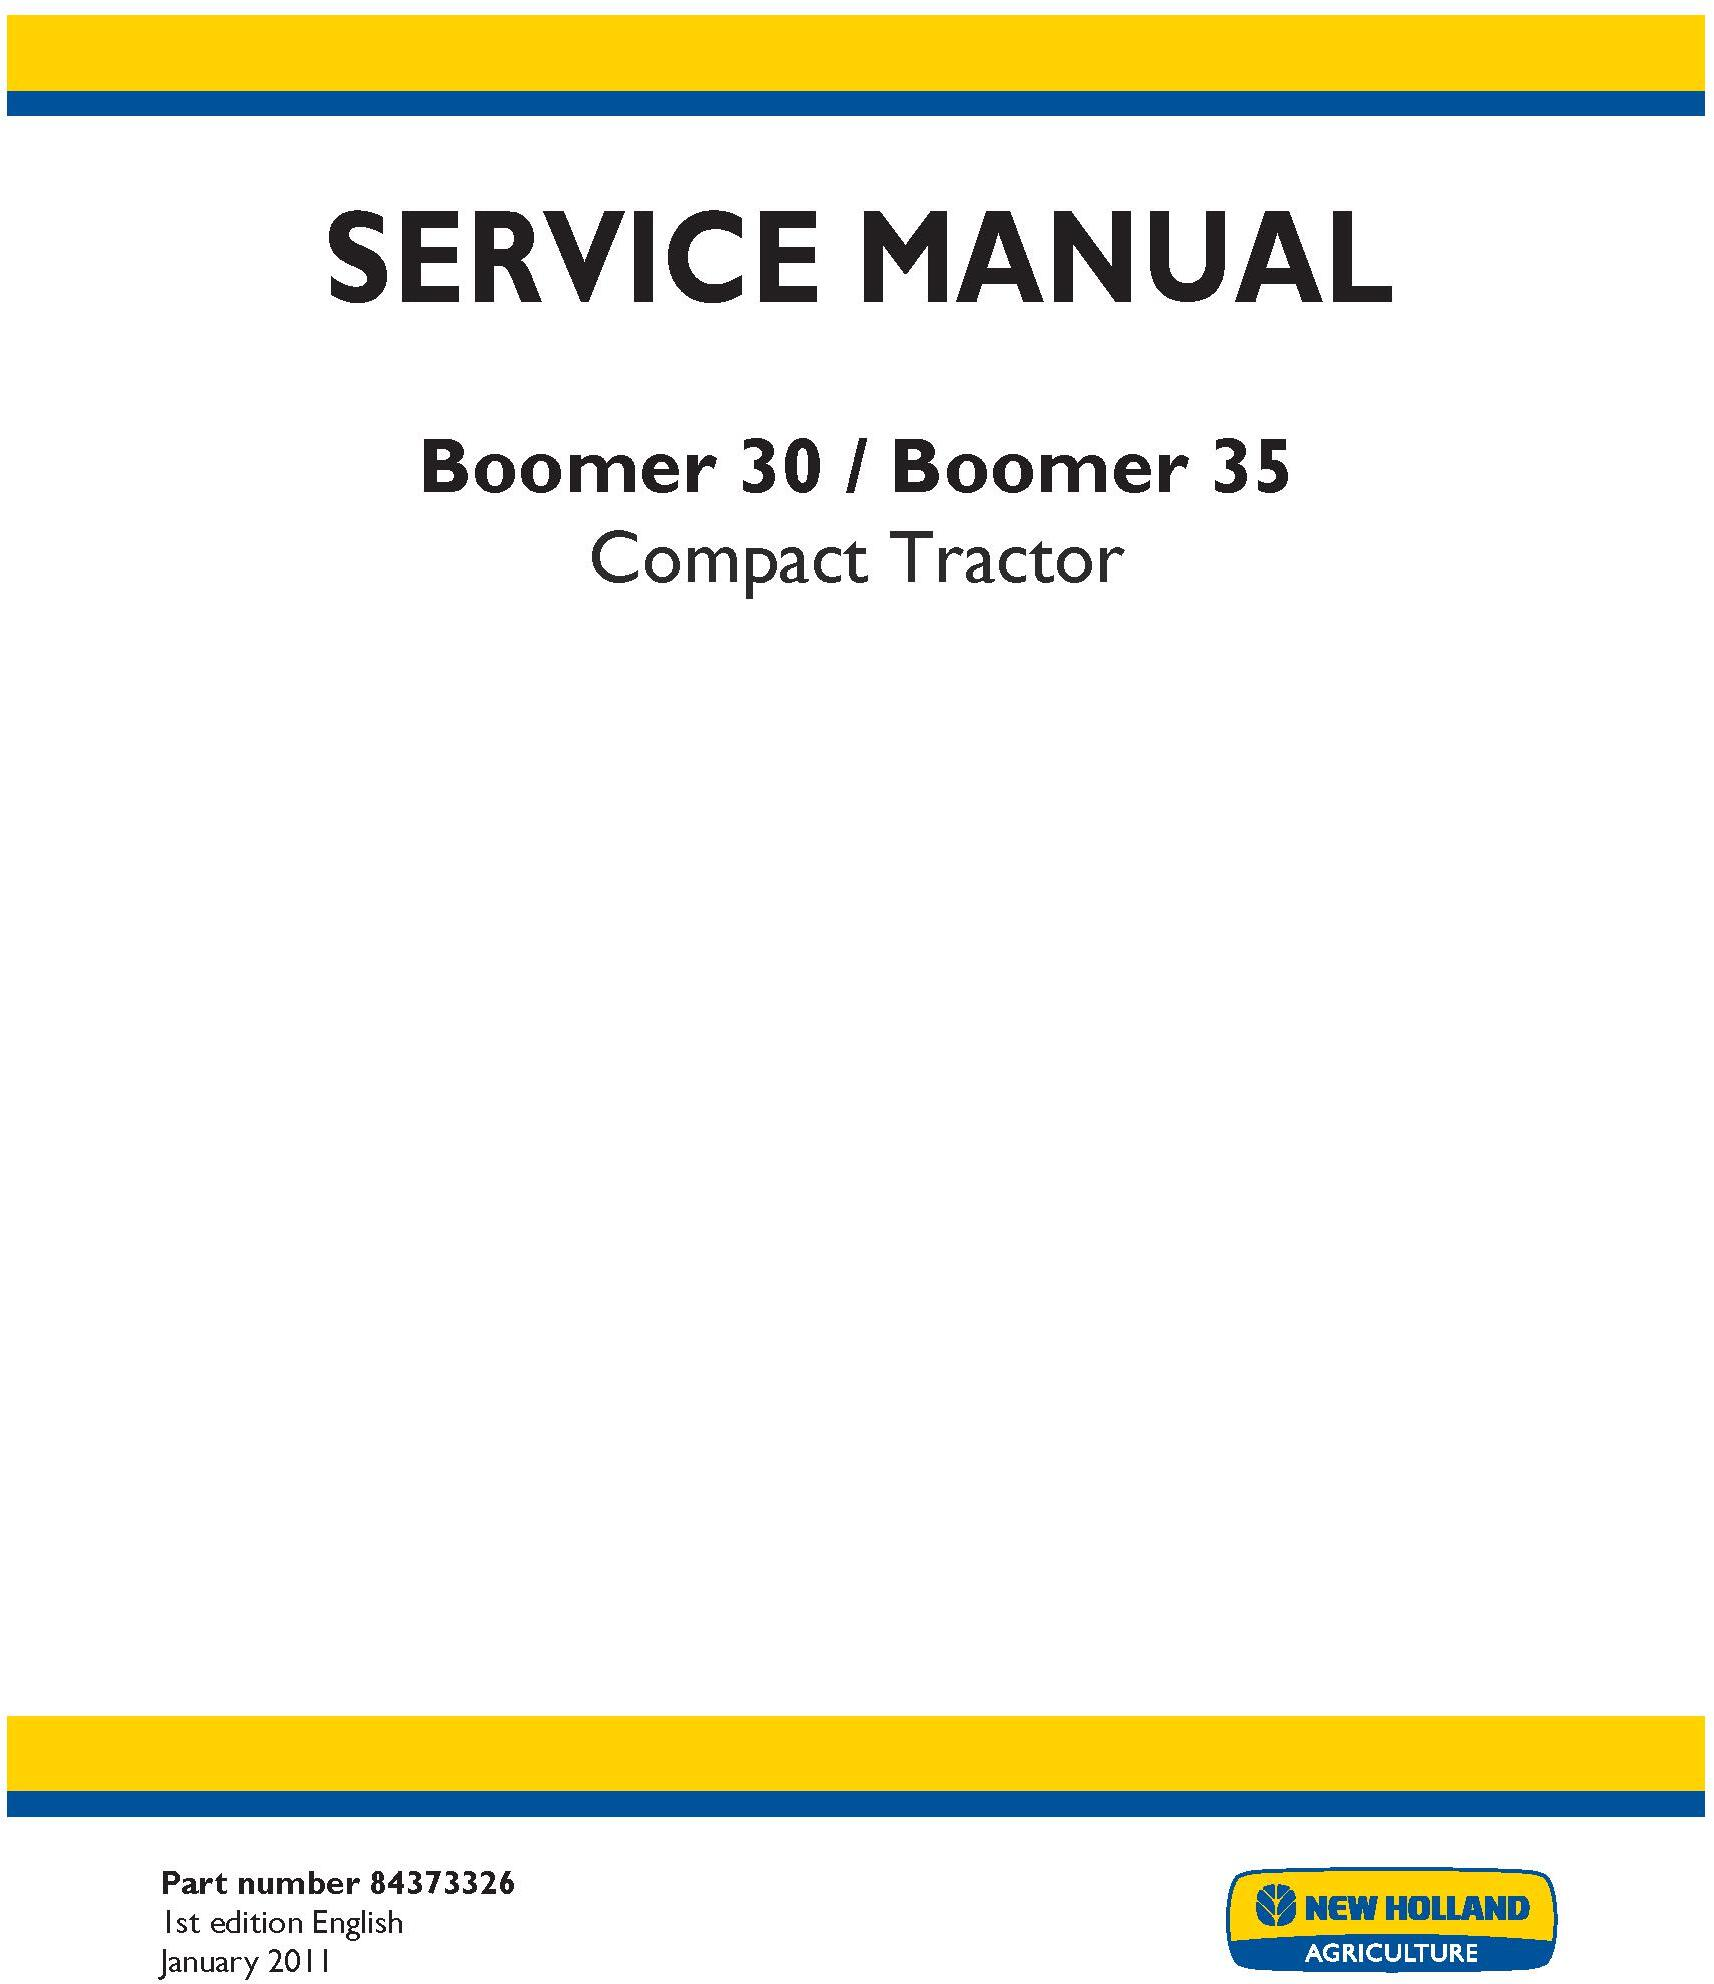 New Holland Boomer 30, Boomer 35 Compact Tractor Service Manual - 19571